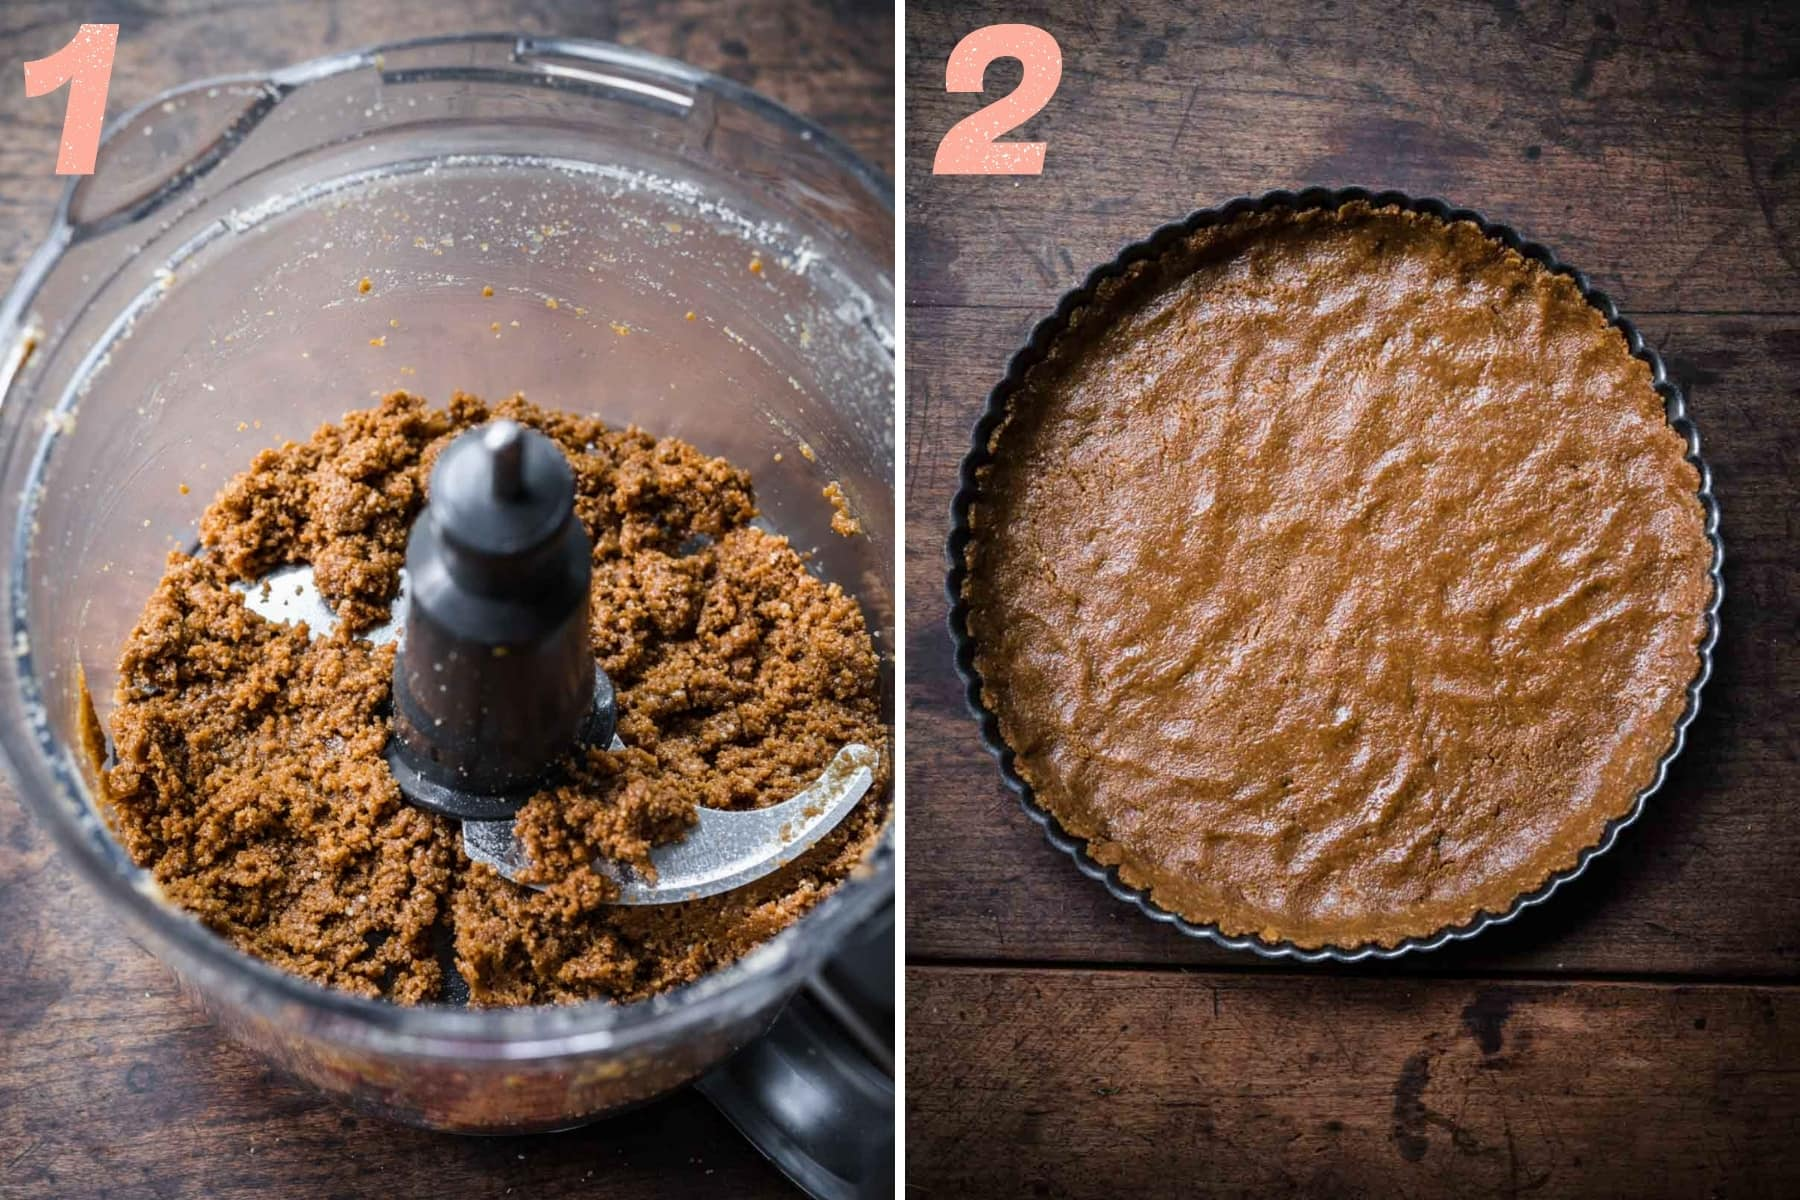 before and after blending ingredients for graham cracker crust.